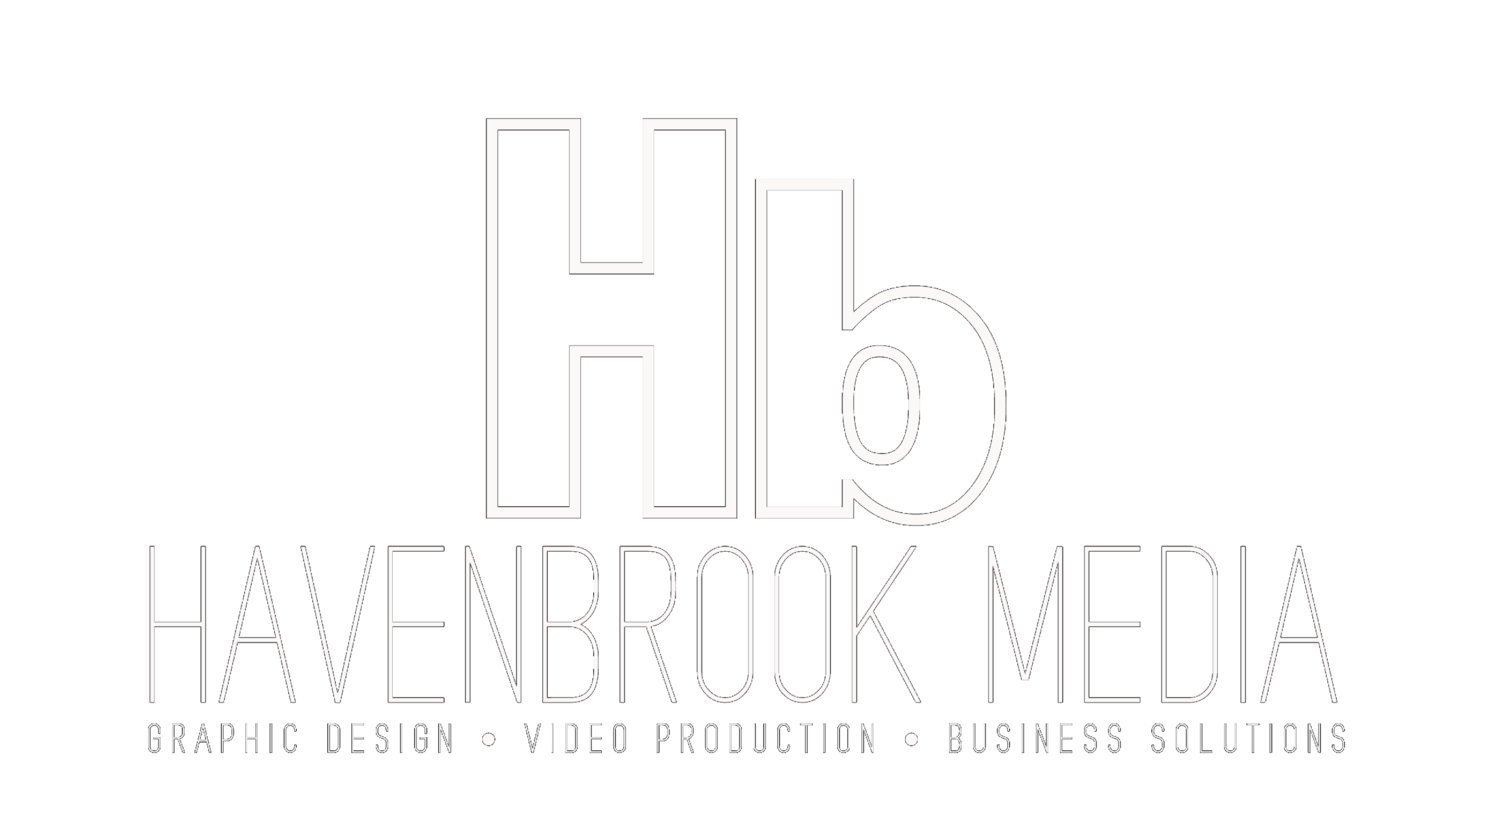 Havenbrook Media